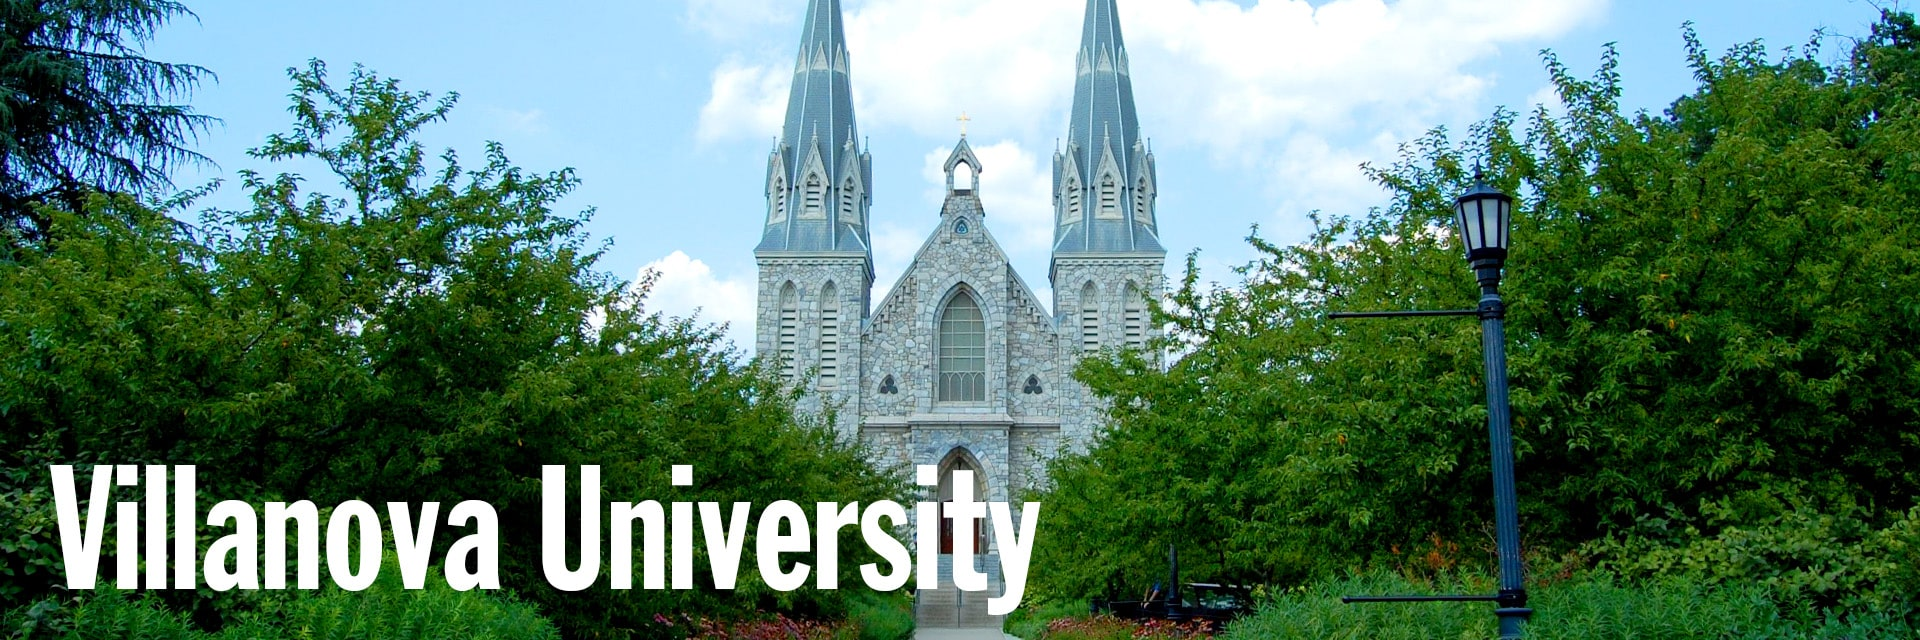 Villanova University Summer Programs for Middle School Students